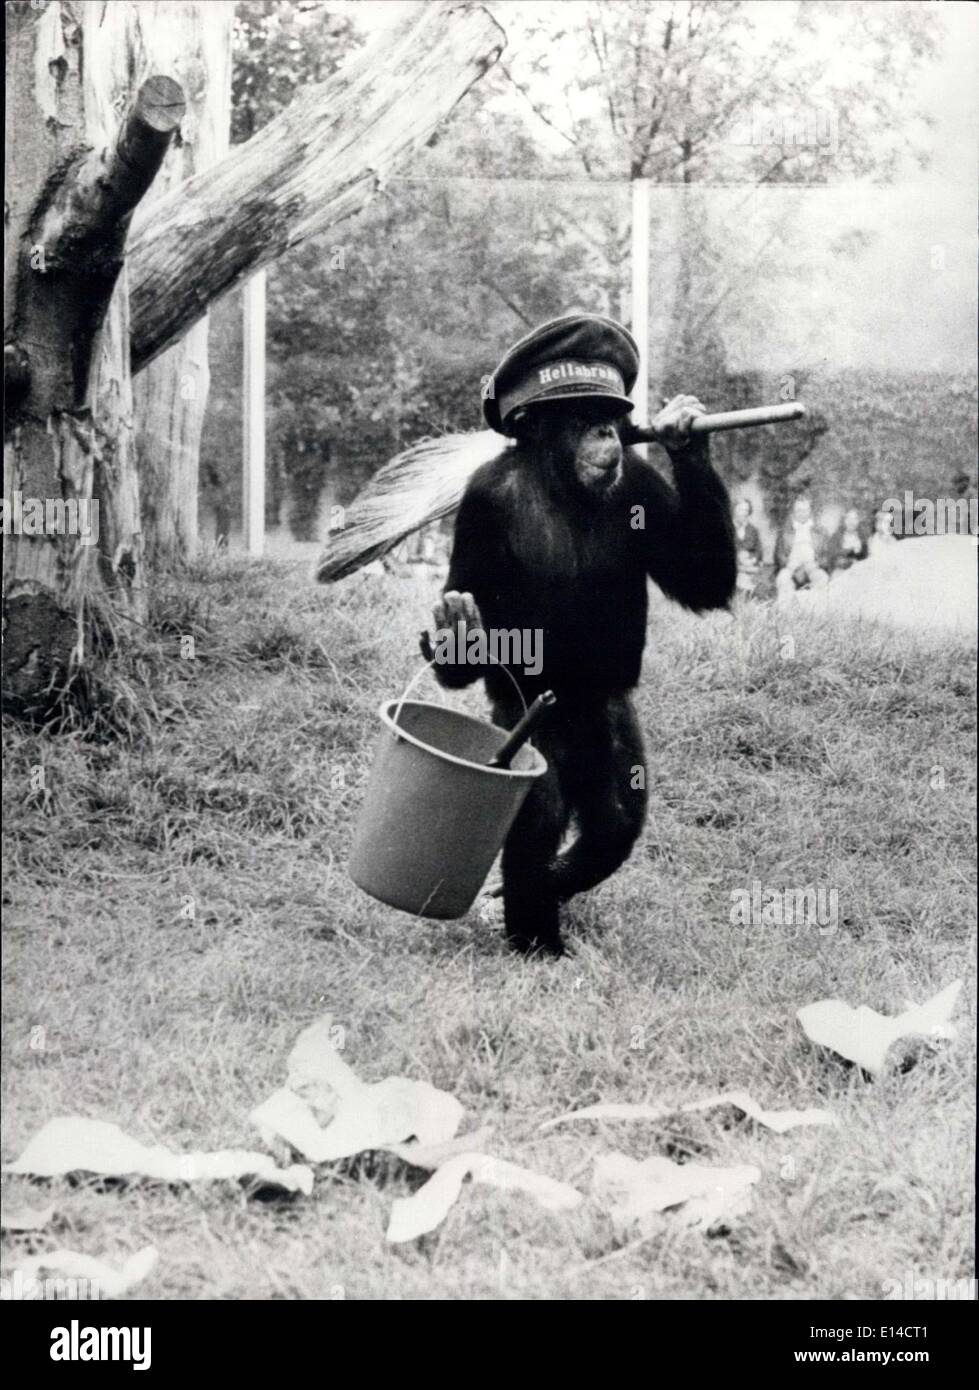 Apr. 17, 2012 - All Part Of His Daily Routine: ''Waldemar'' the young chimpanzee at the Hellabrunn Zoo in Munich, Germany, is very particular about keeping his part of the reservation clean and tidy and consequently part of his daily routine is to stroll around with his bucket and broom cleaning up all the litter. - Stock Image